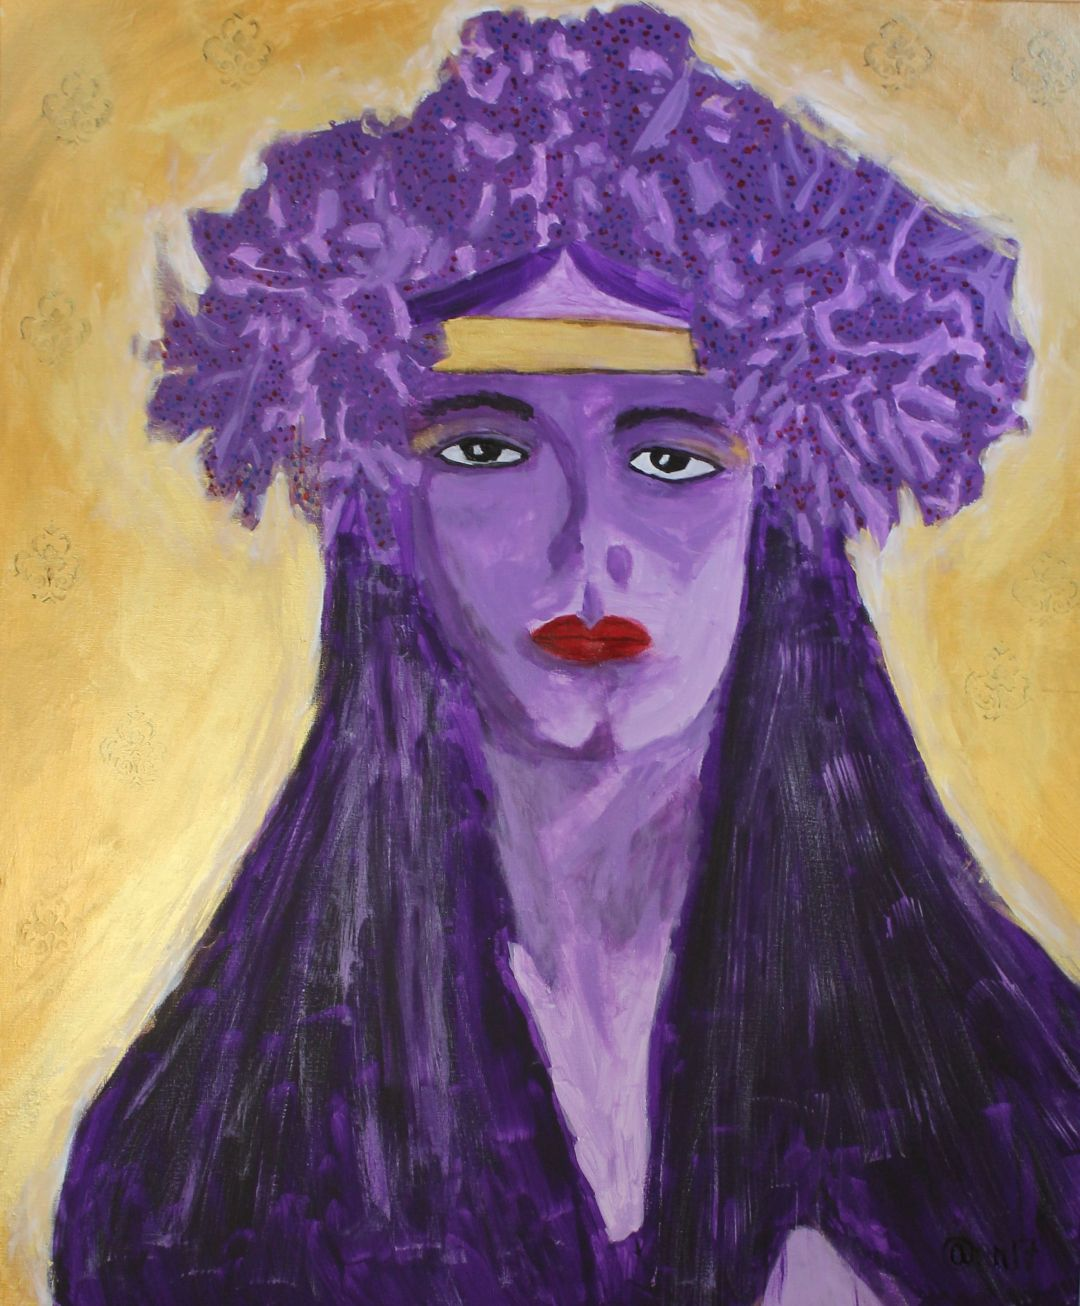 Evelyn Crowned, acrylic painting by Audra Arr